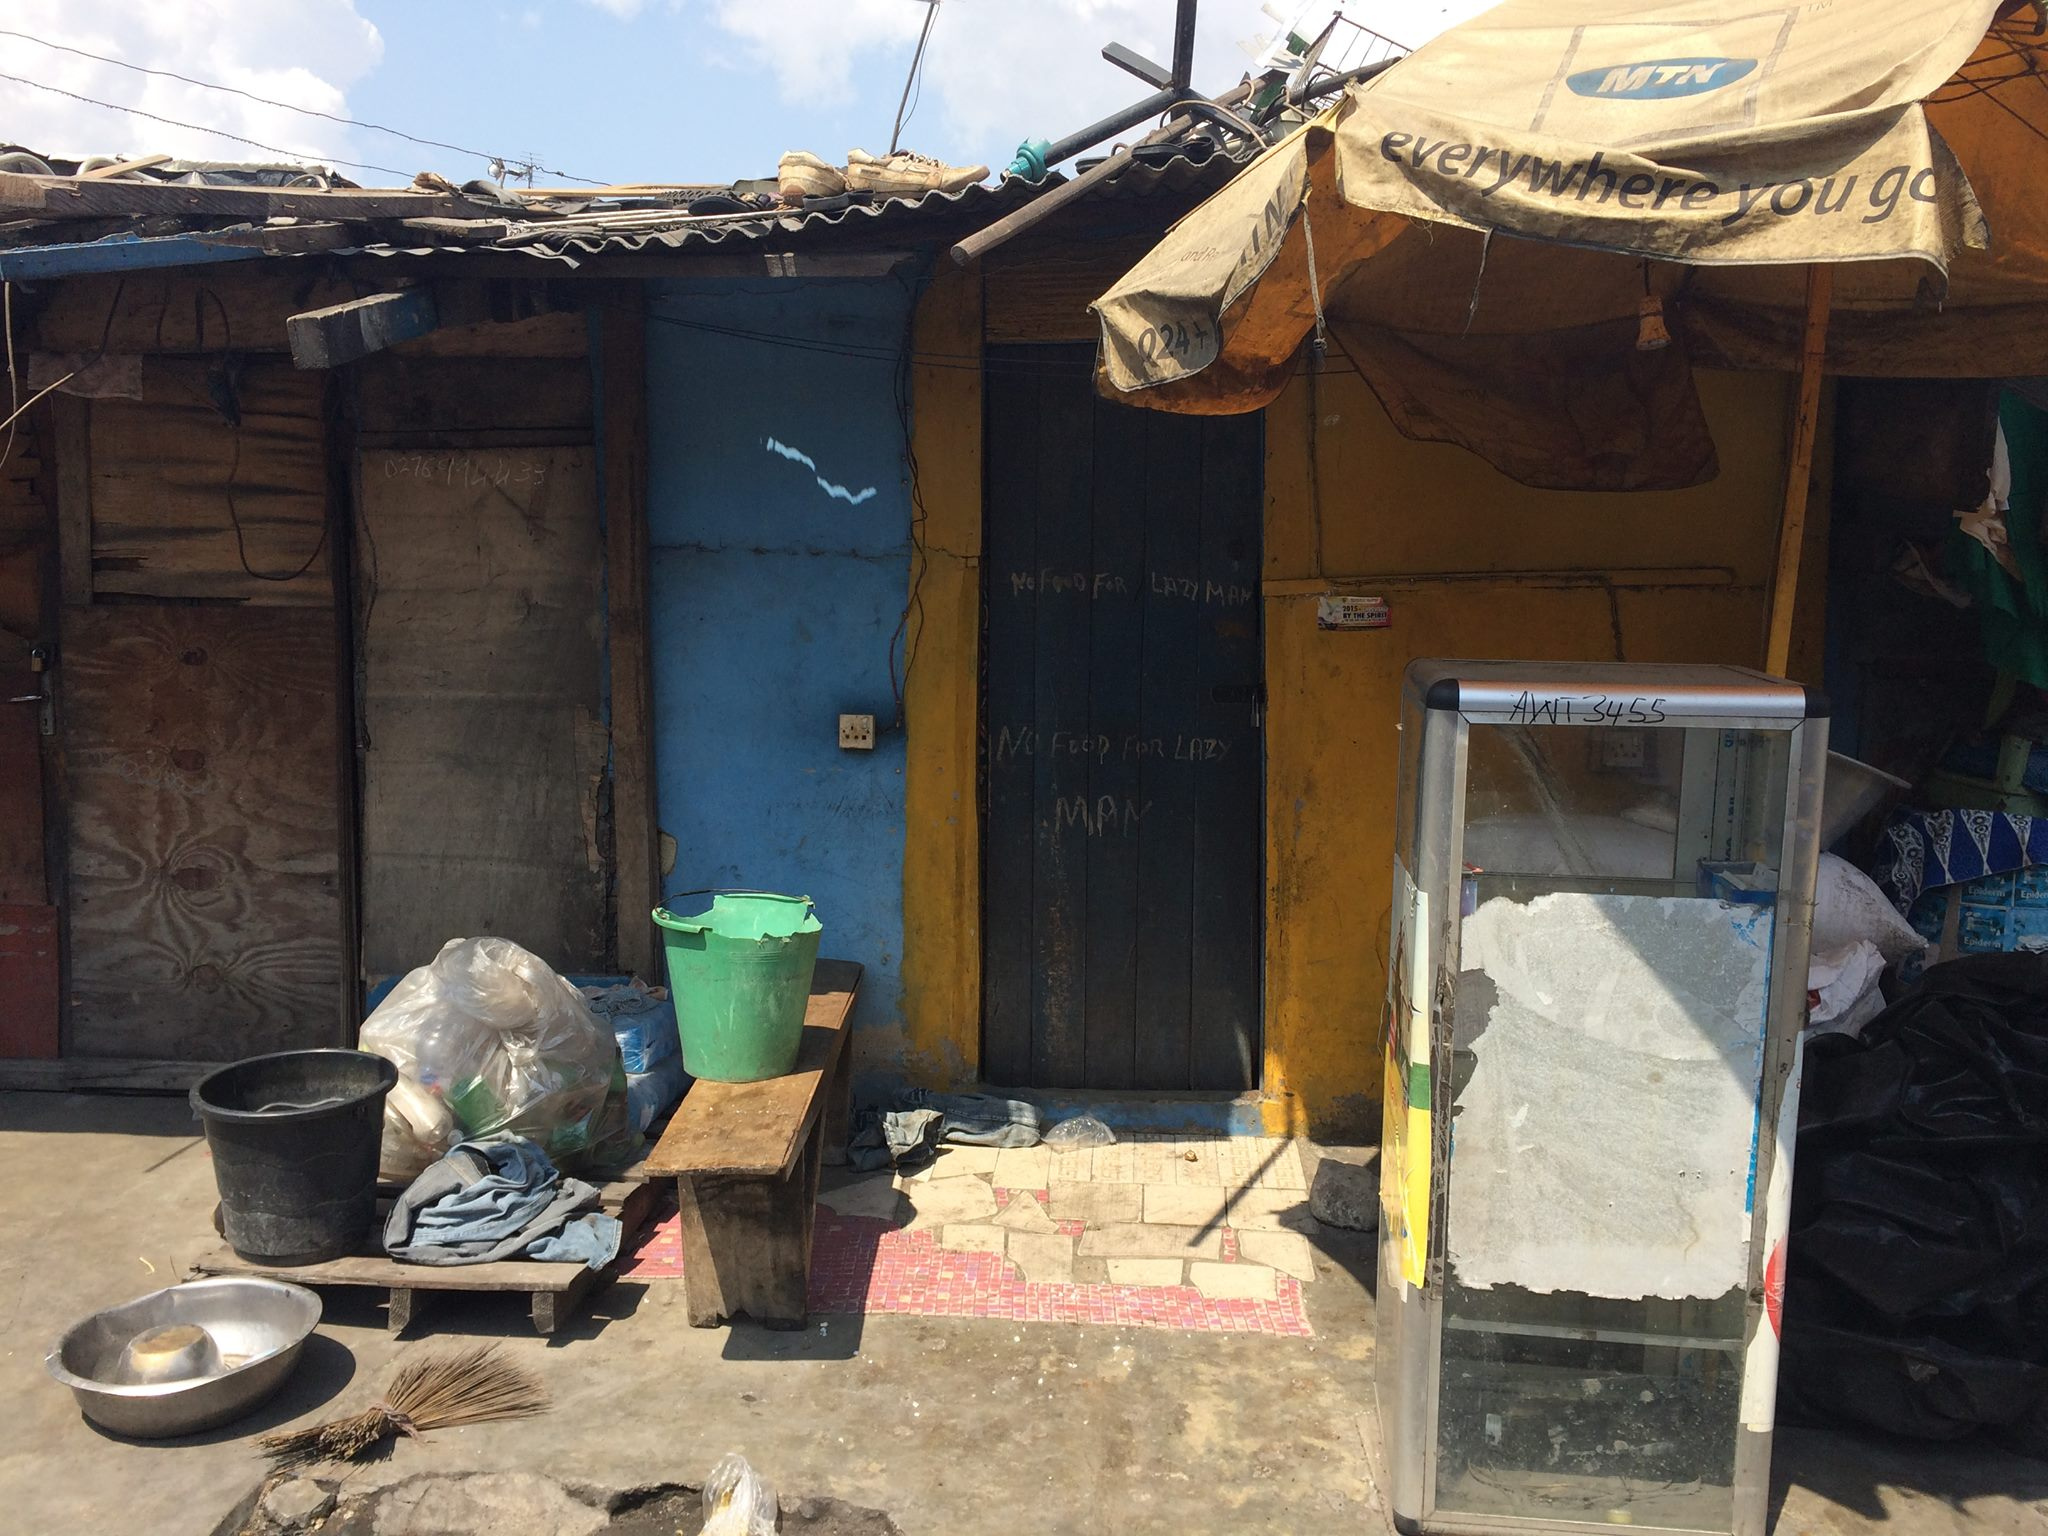 Money in a slum: the logic of small gains